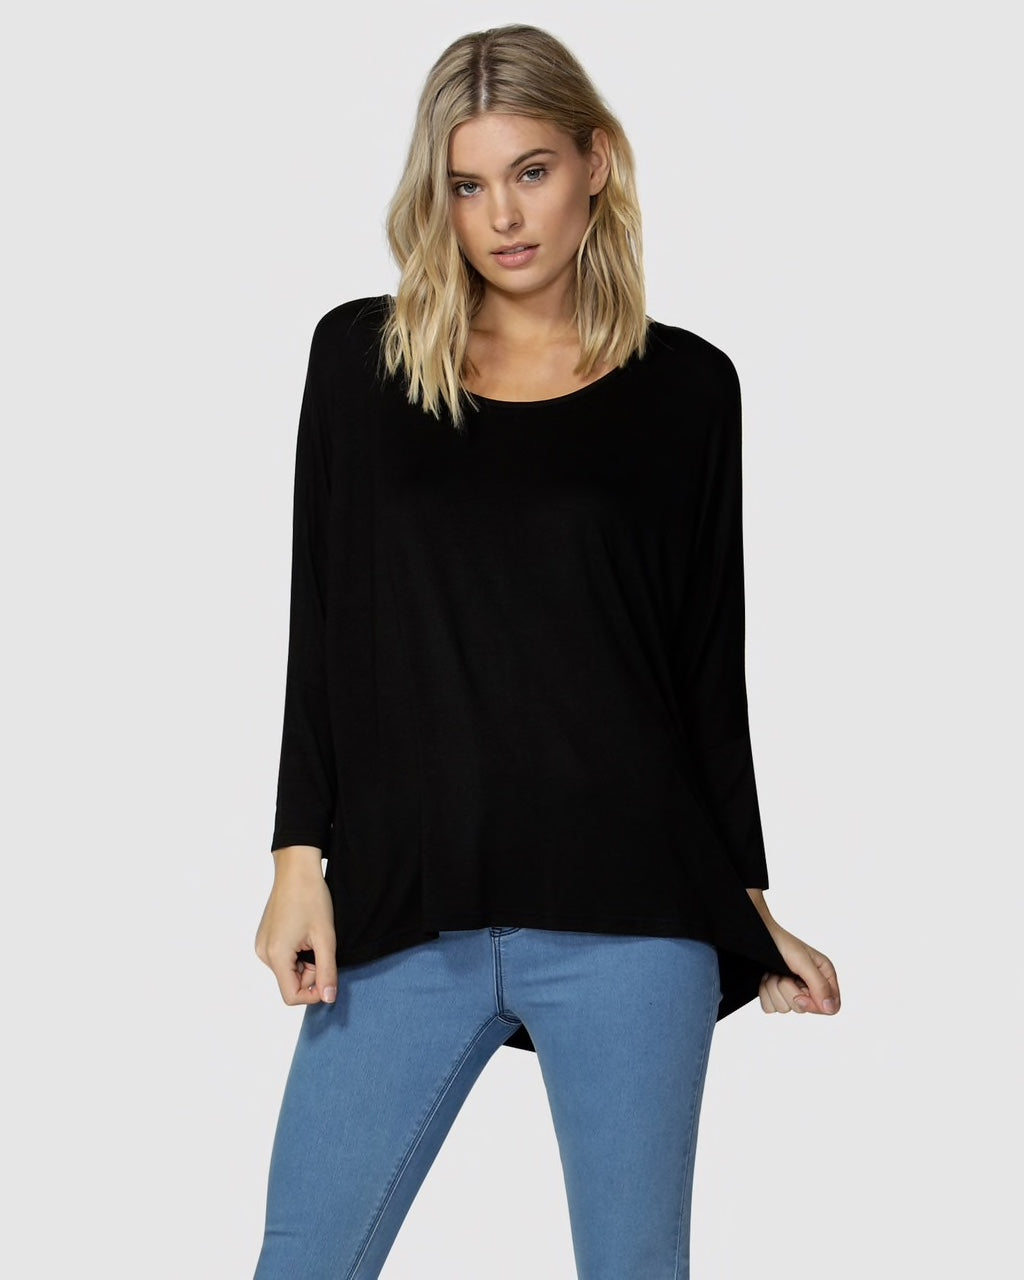 Betty Basics Milan 3/4 Top. Black. New Zealand. Casual wear. Cotton.